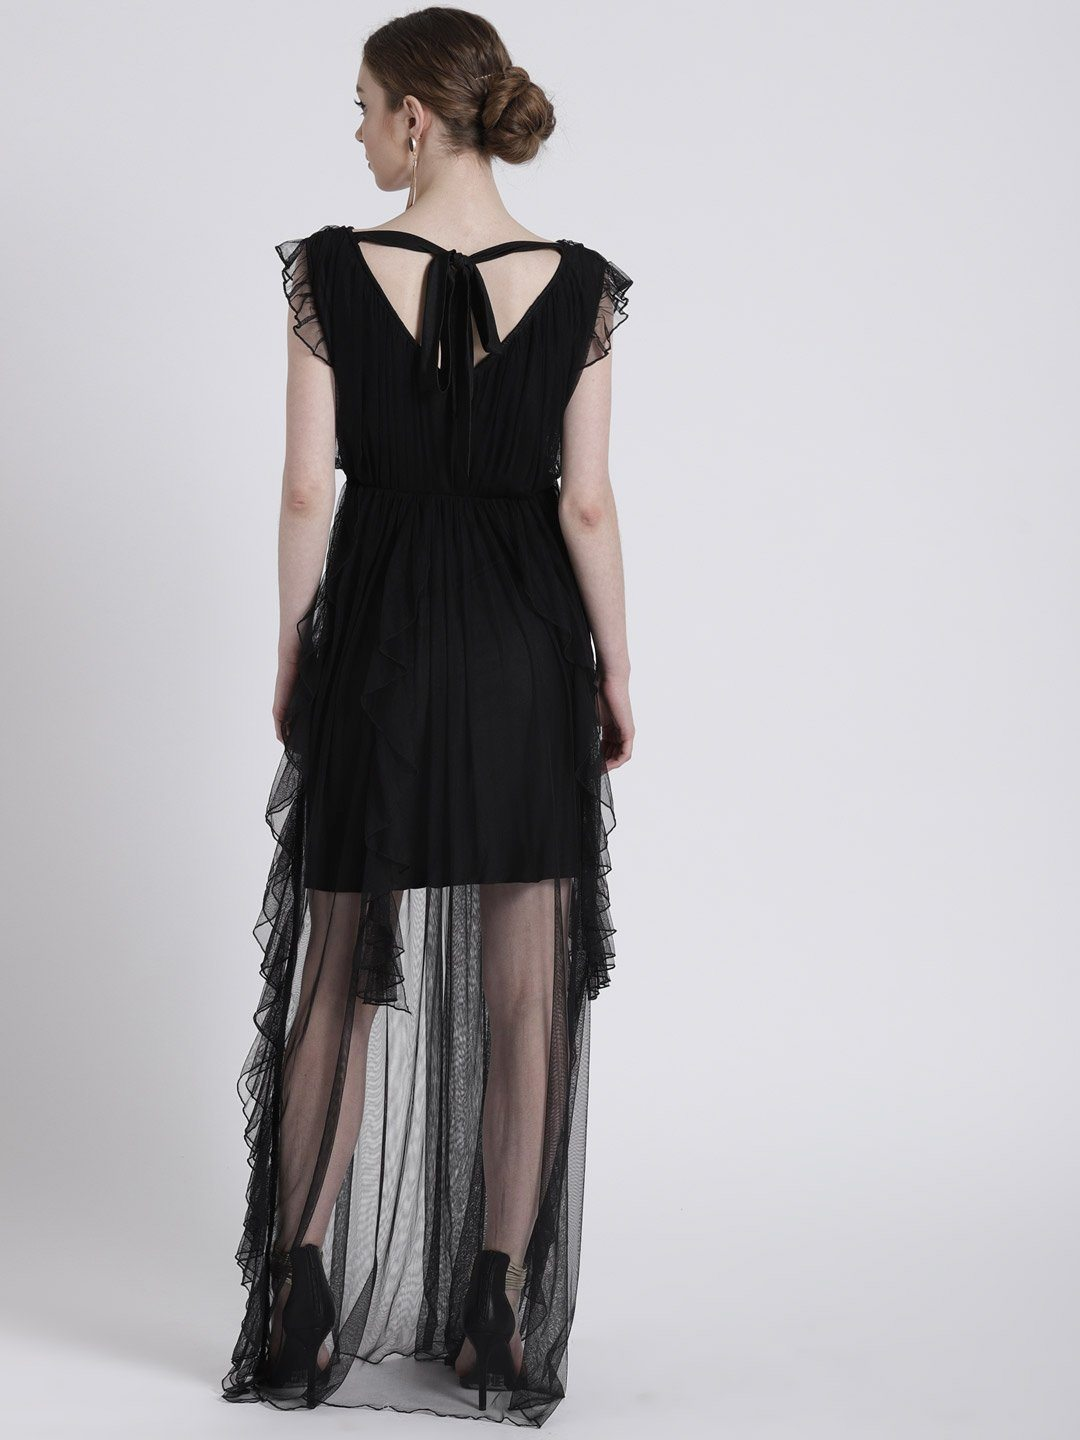 BLACK SHEER DRESS WITH RUFFLE DETAIL